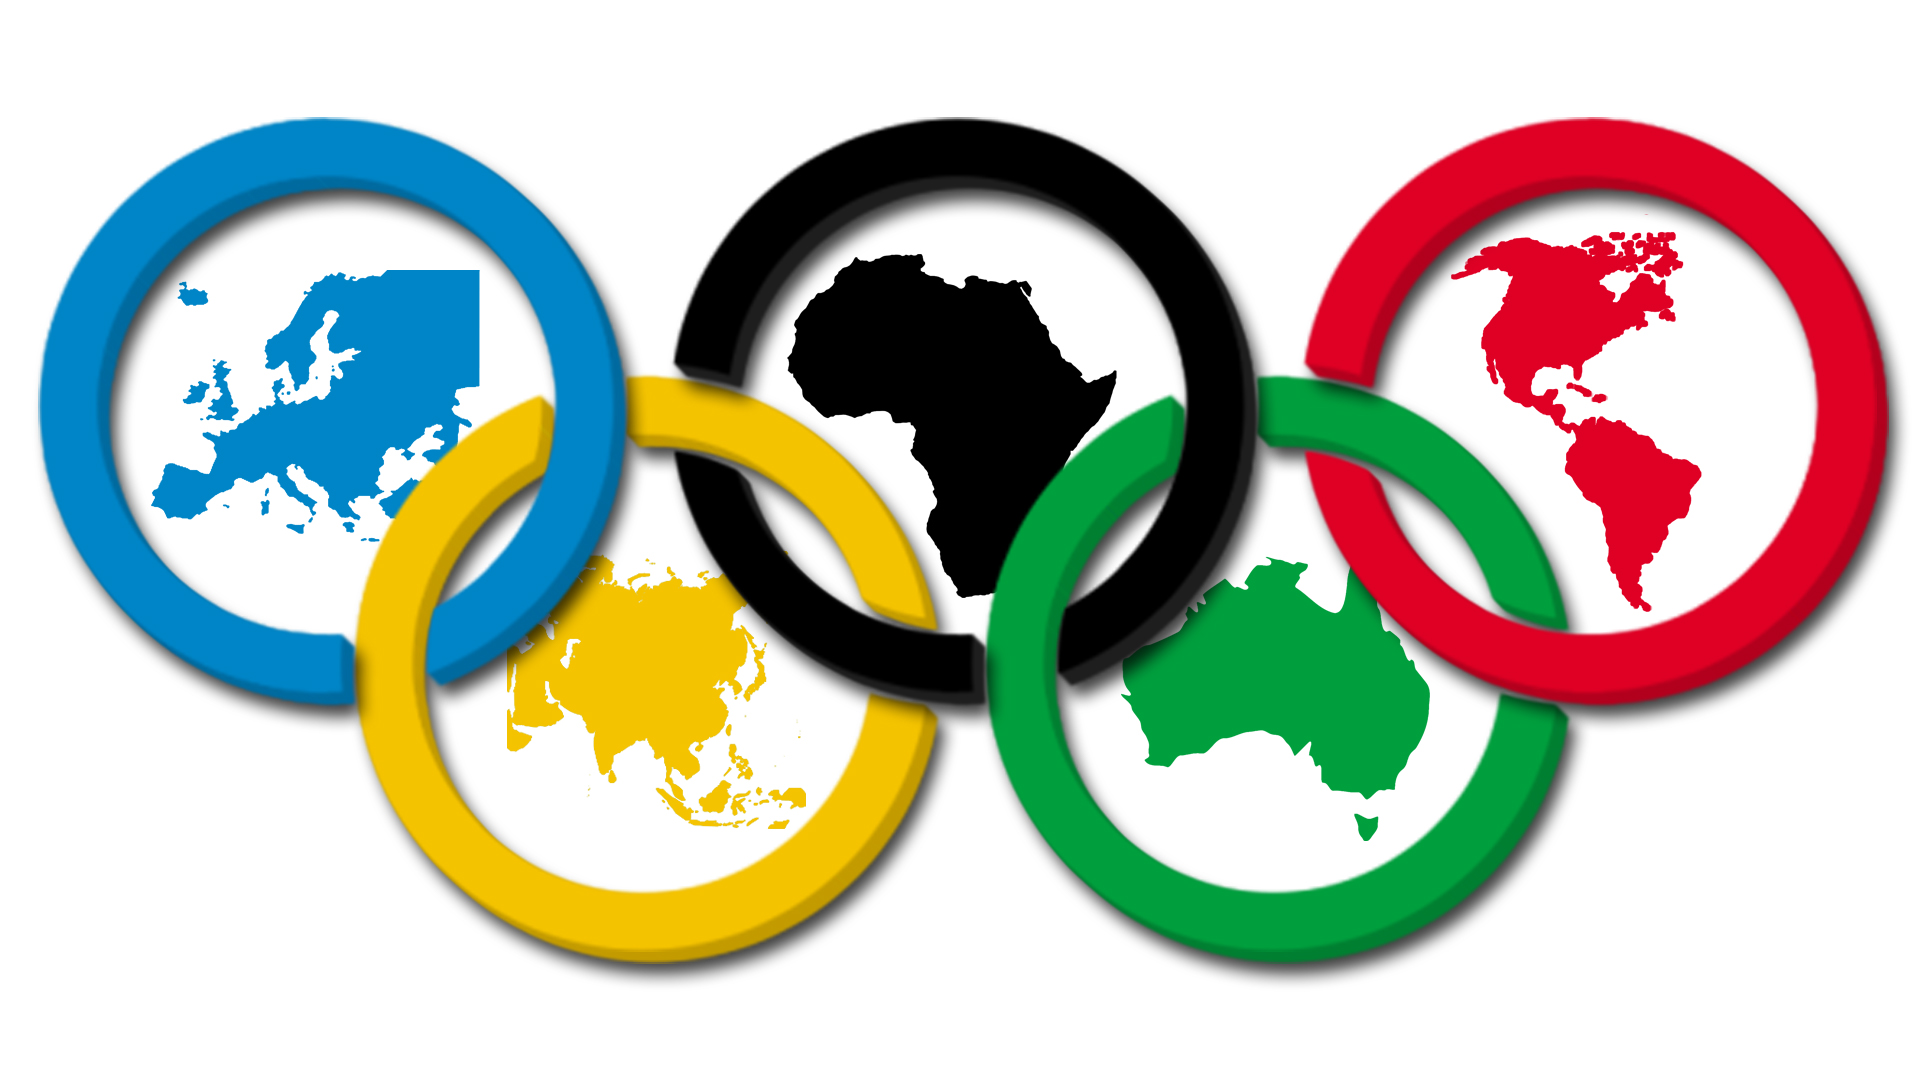 http://www.squareeyed.tv/wp-content/uploads/2015/06/Best-Olympic-Rings-Wallpaper-Download2.jpg